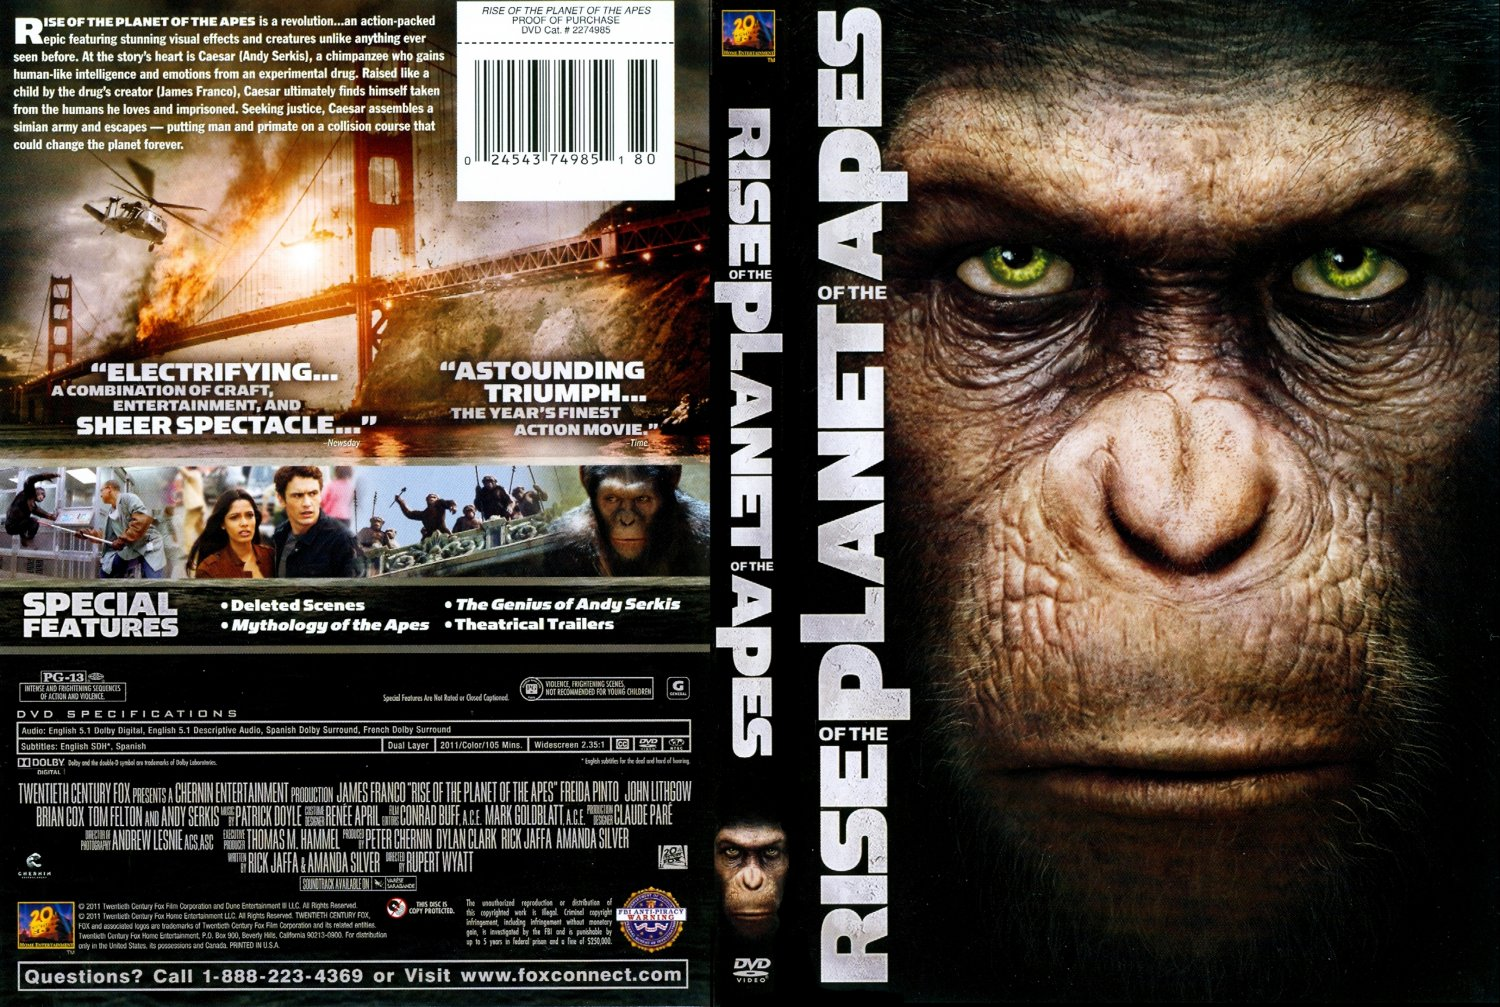 Rise Of The Planet Of The Apes (2011) - Action, Drama, Sci-fi